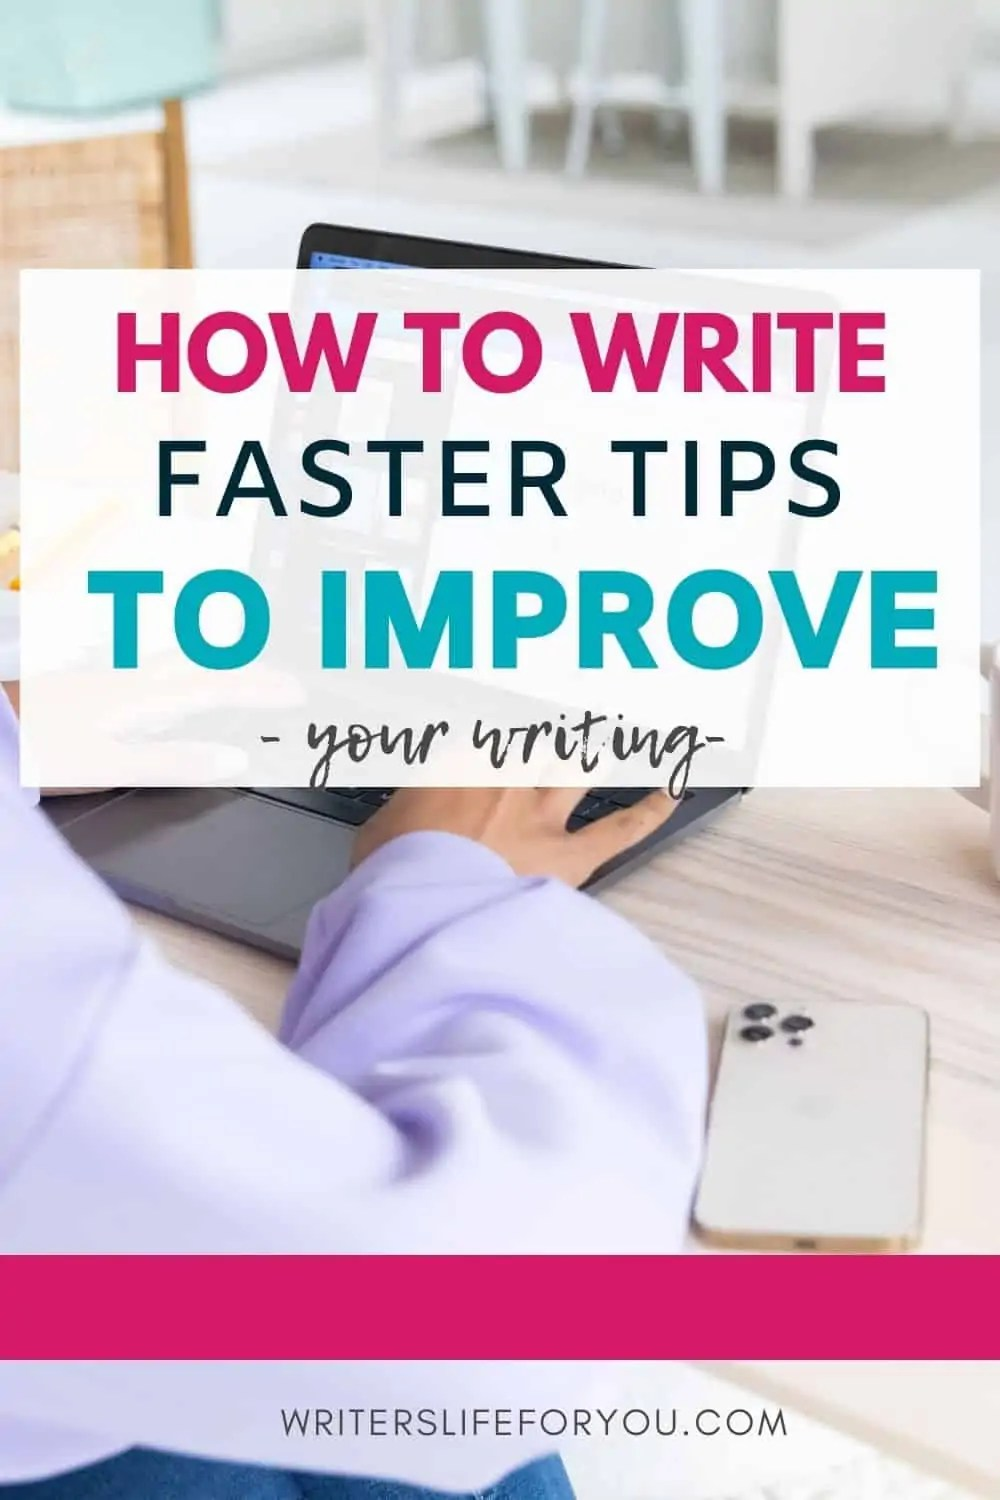 How Long Does It Take to Write 1,000 Words + How to Increase Your Speed